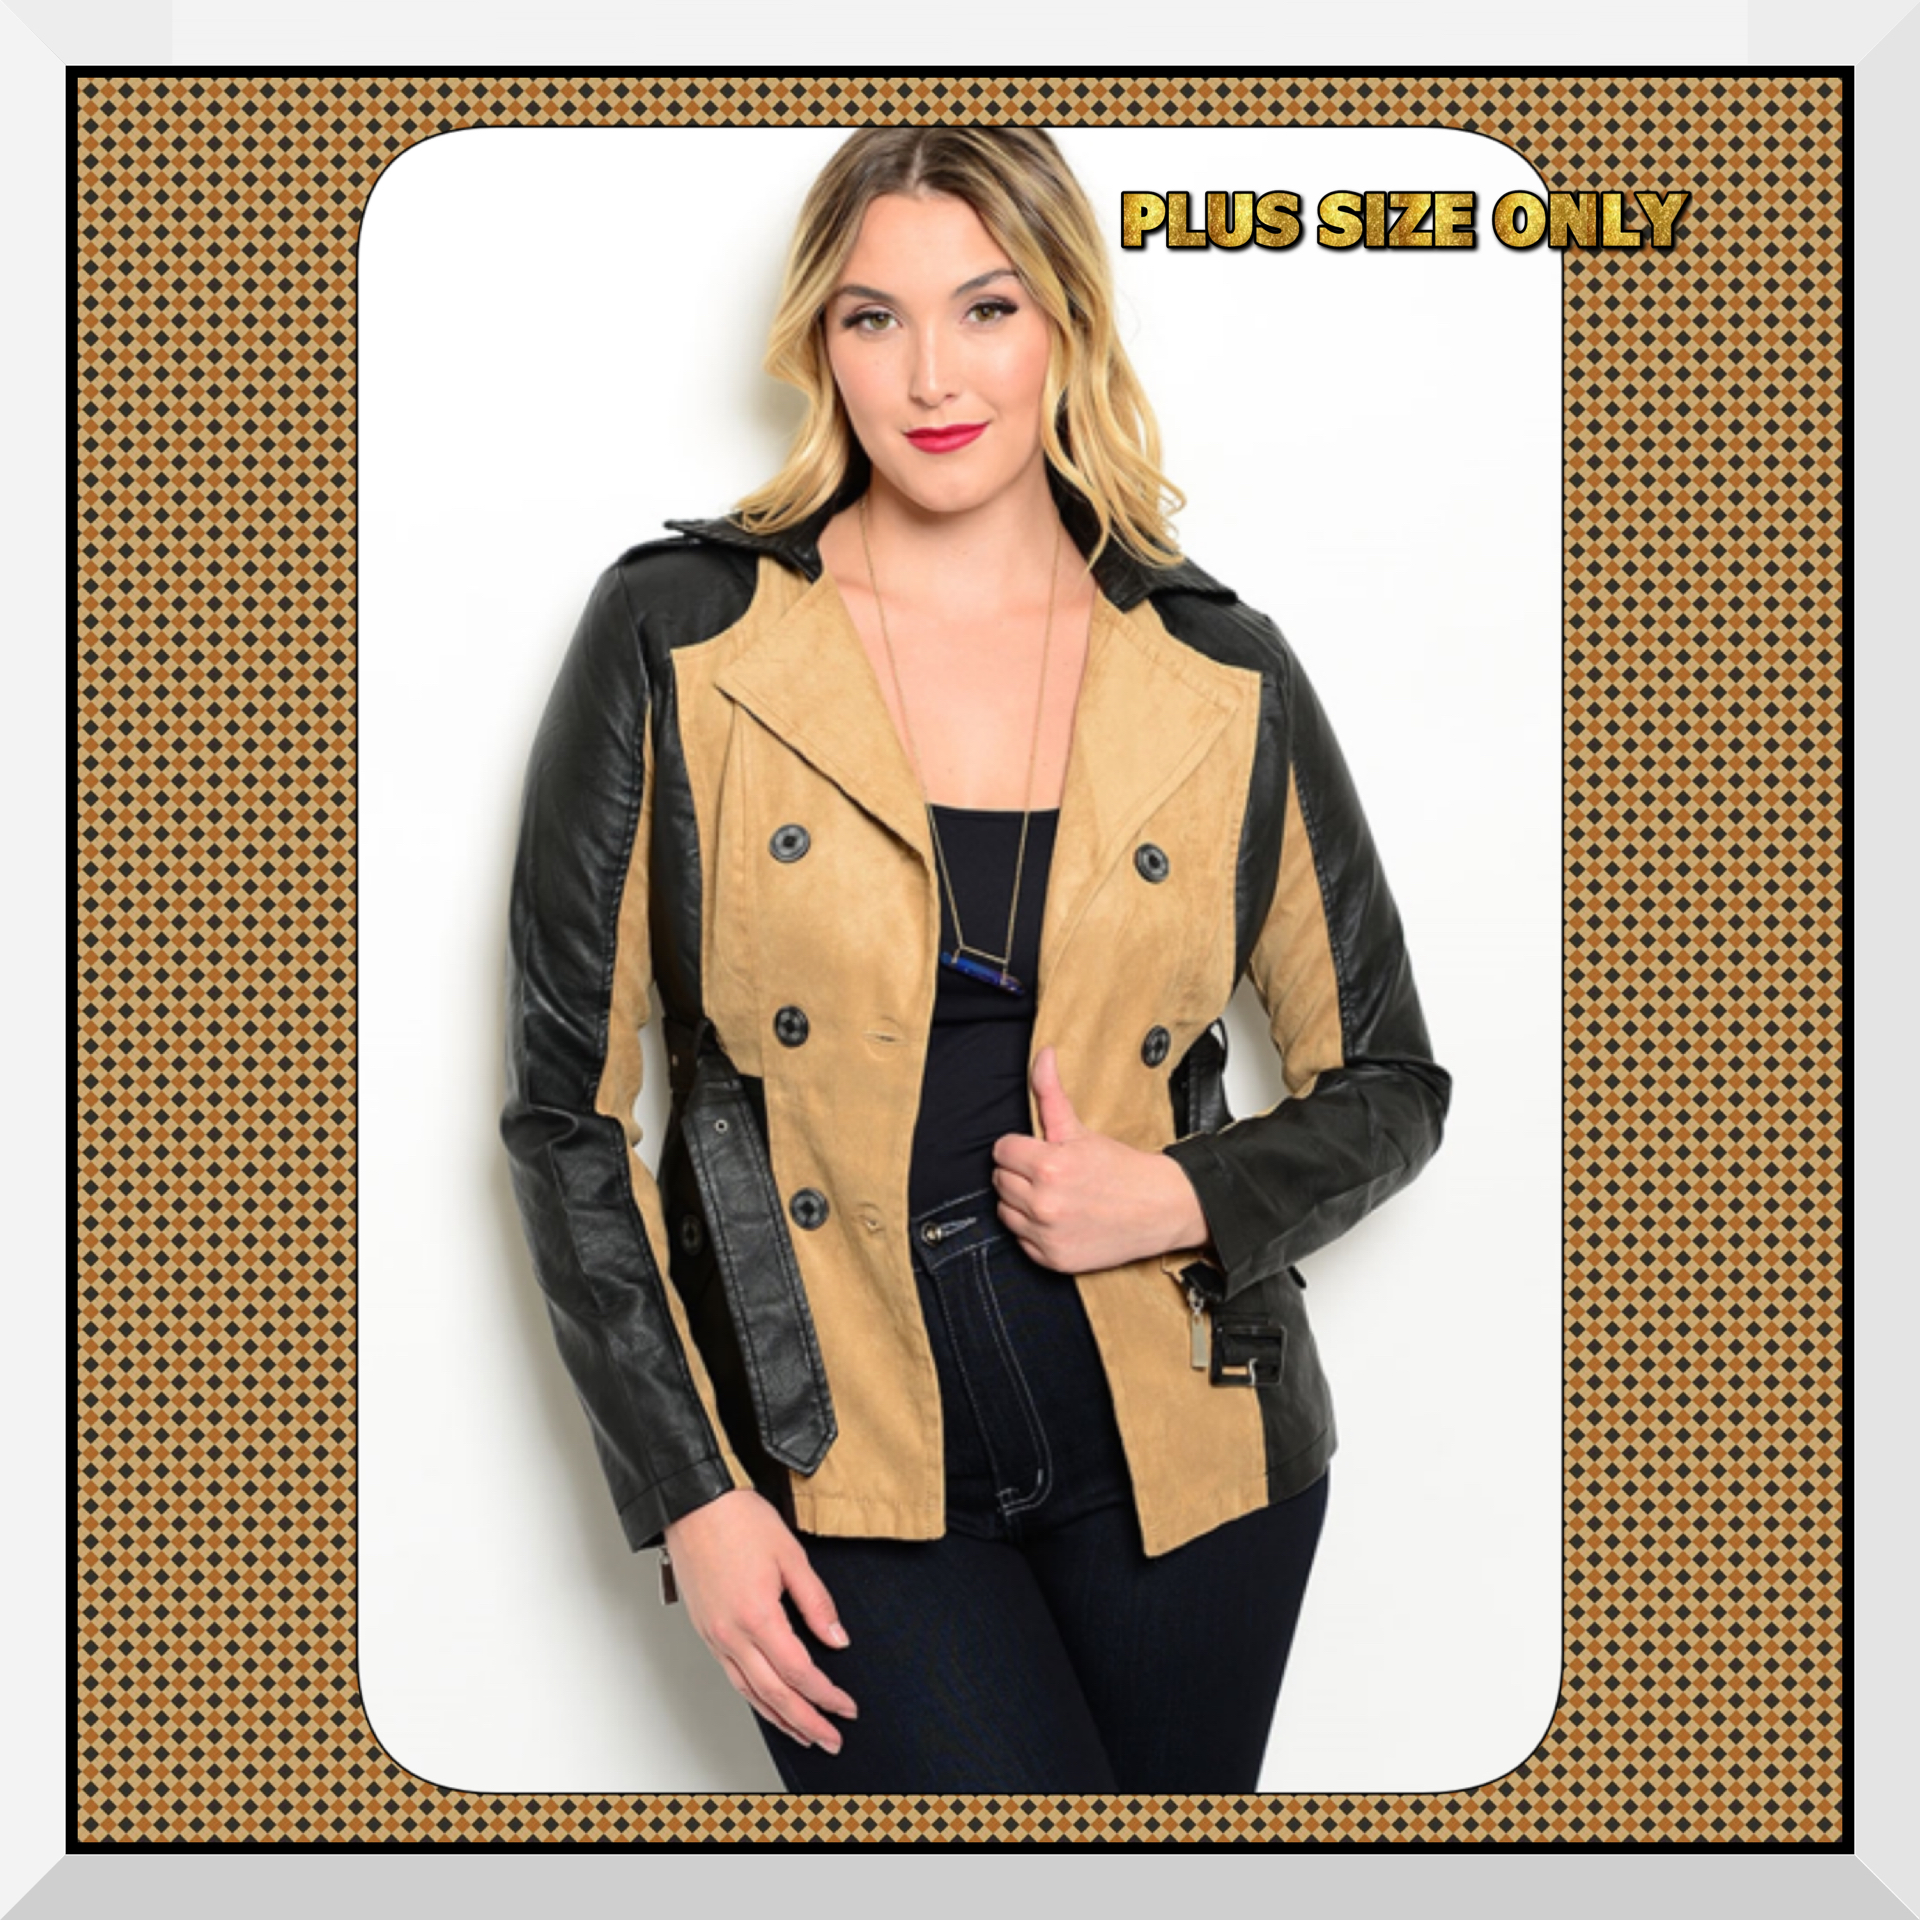 5f2a0a0f8 New Plus Size Khaki & Black Faux Leather & Faux Suede Jacket Trench Coat  Curvy XL & 3X Only Left